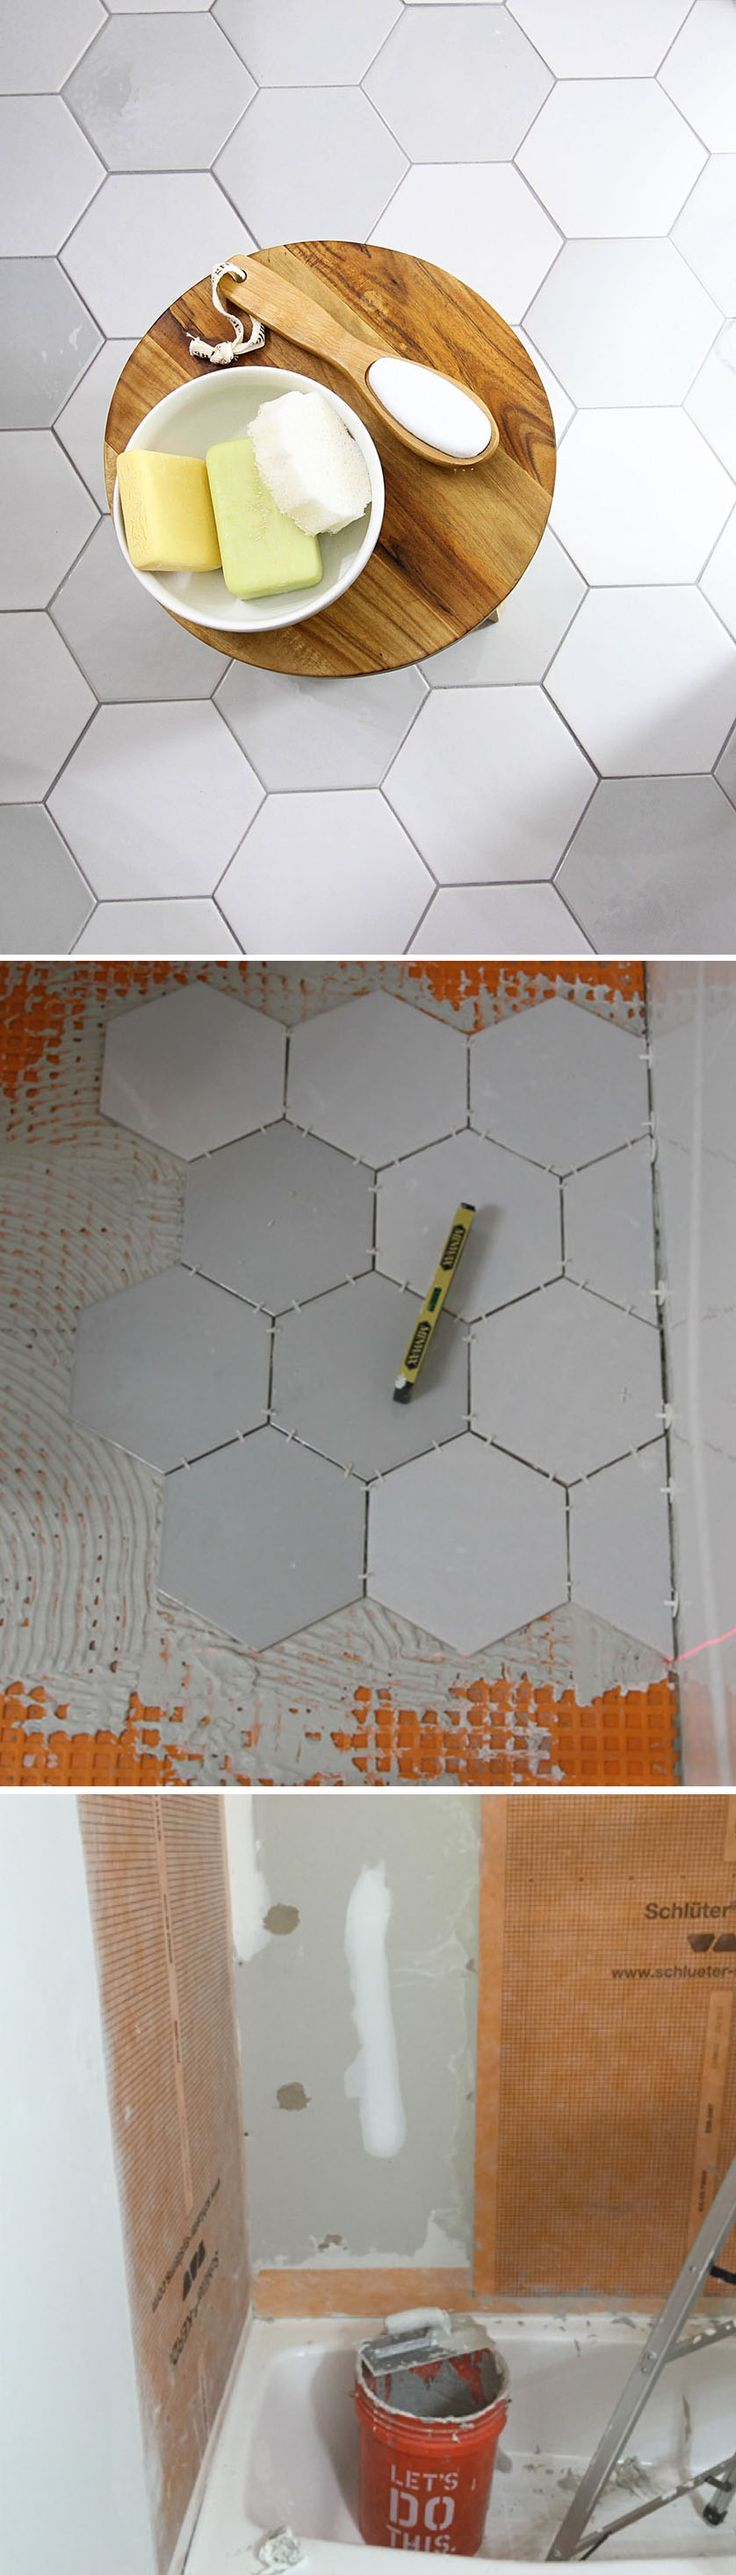 Colored Grout and New Tile Create Fresh Bathroom Look. 17 Best images about Bathroom Design Ideas on Pinterest   Toilets